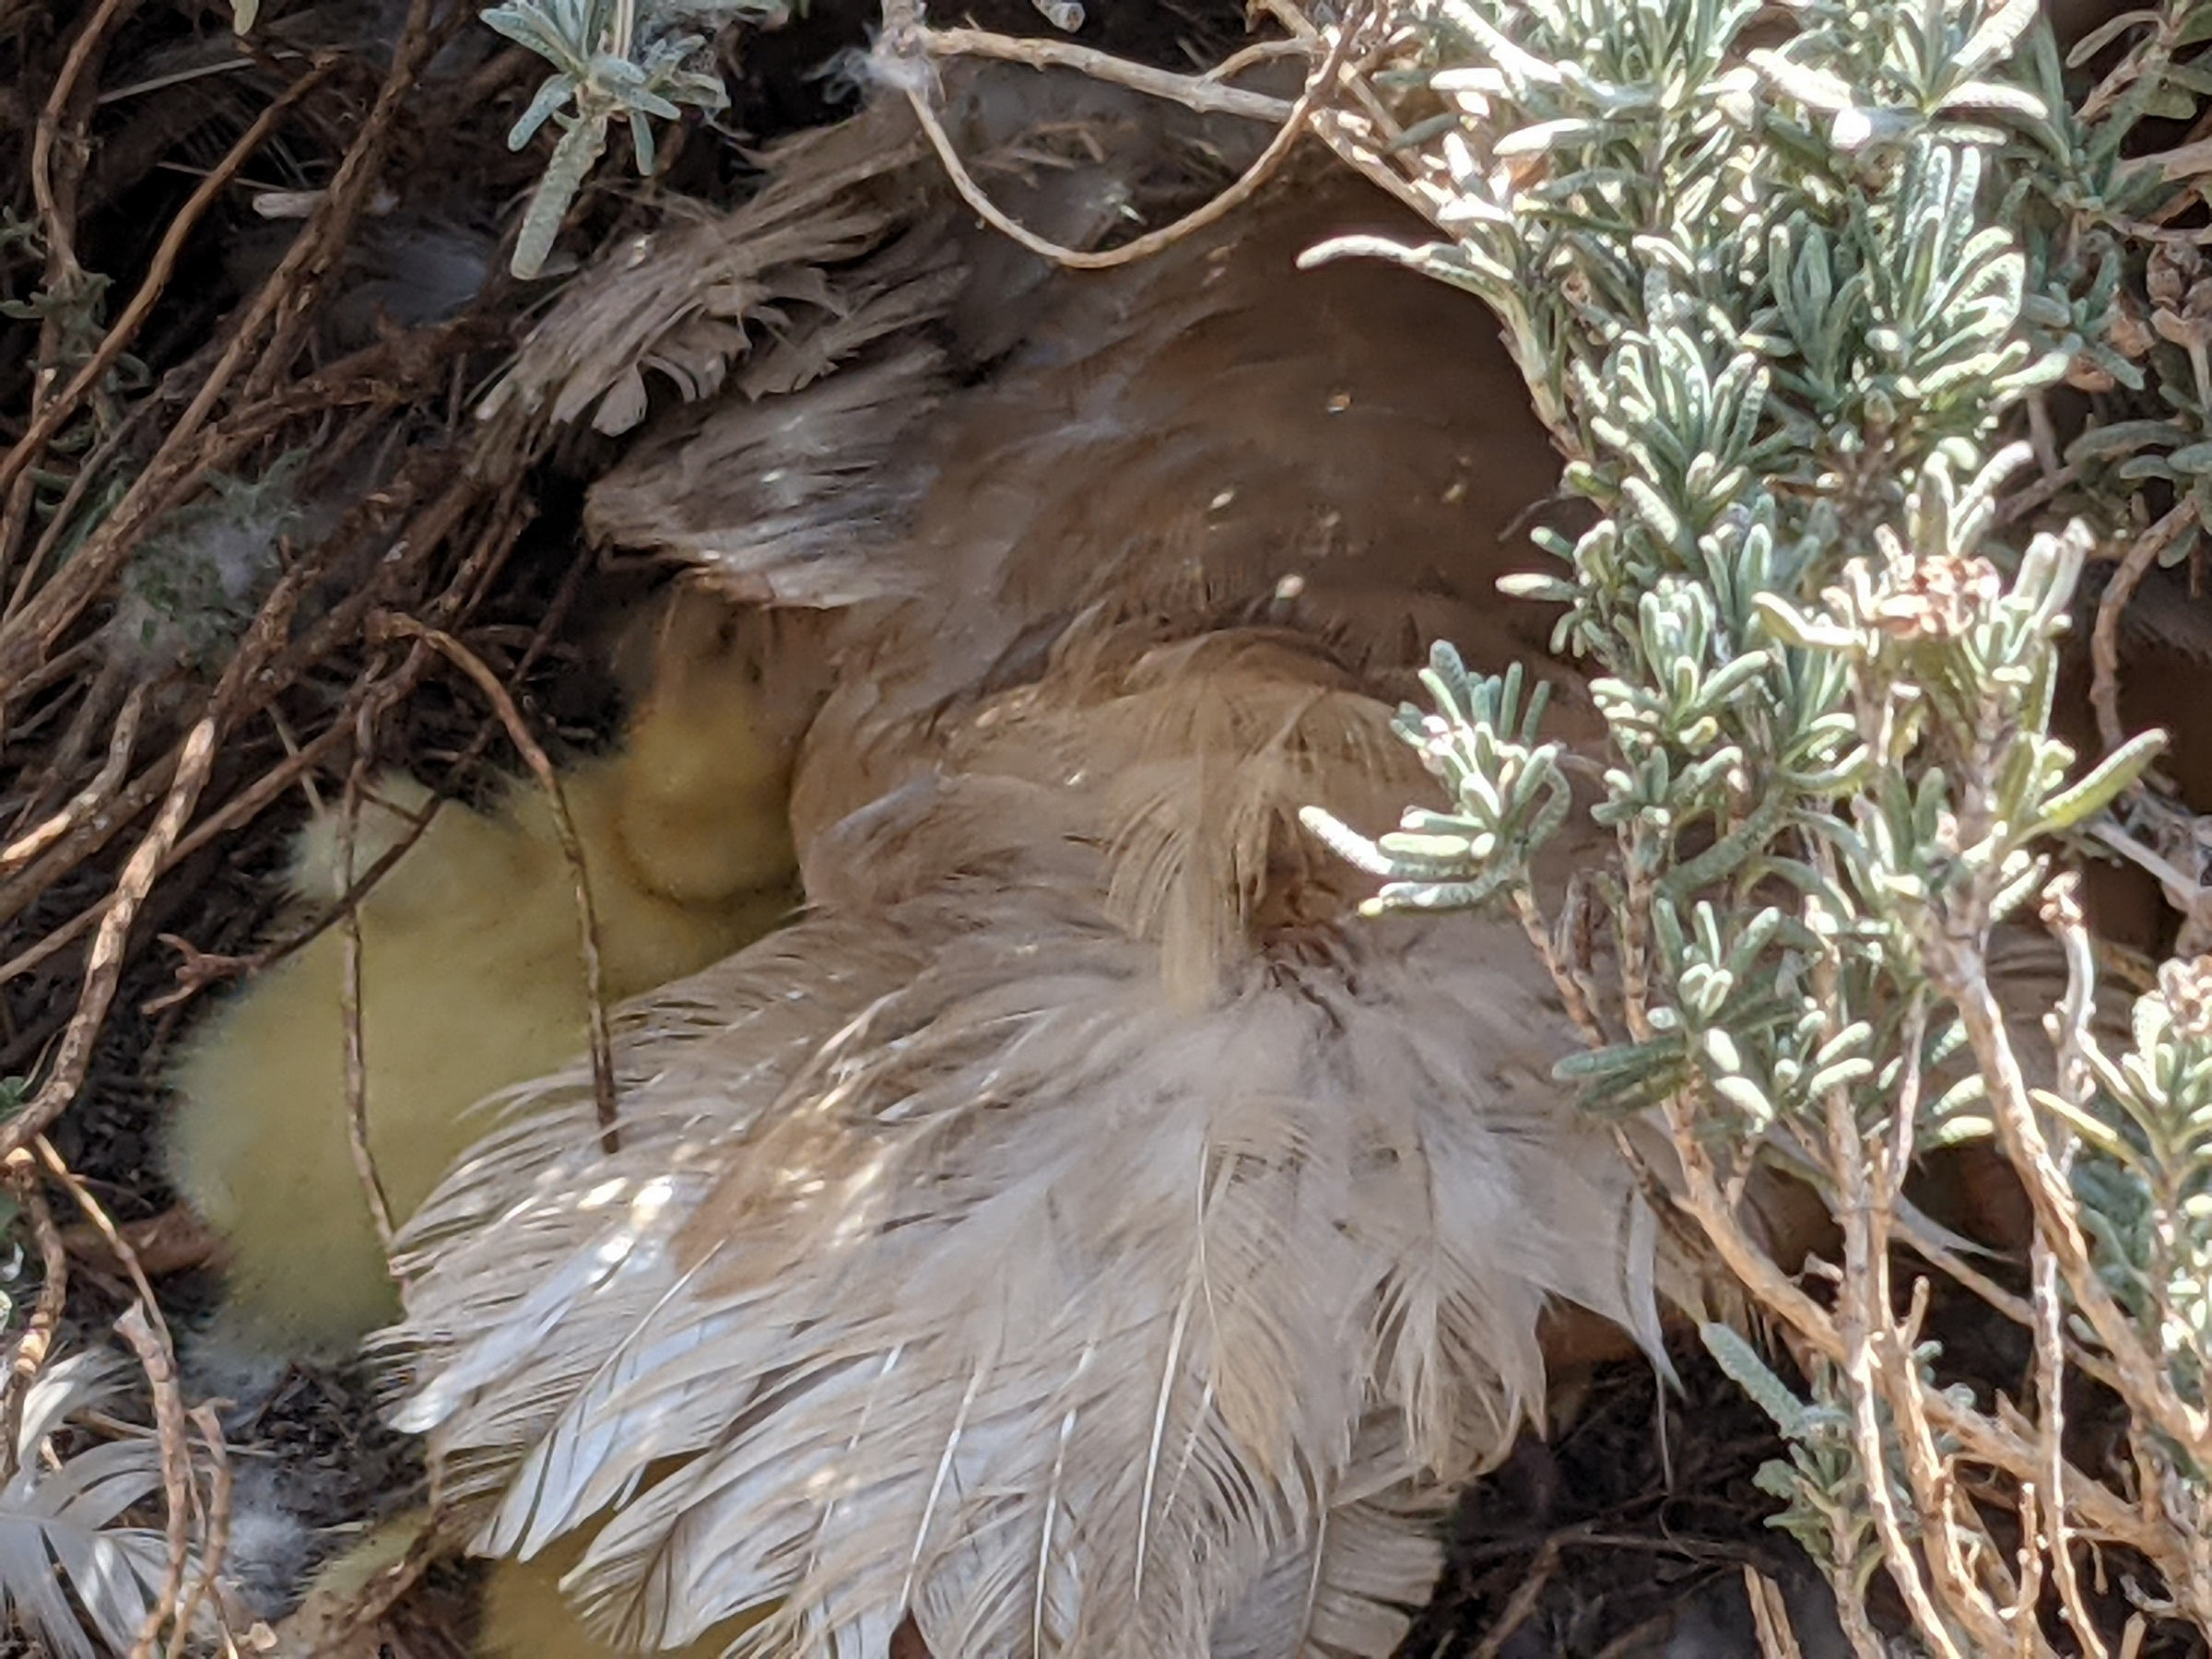 Duck and ducklings in a nest